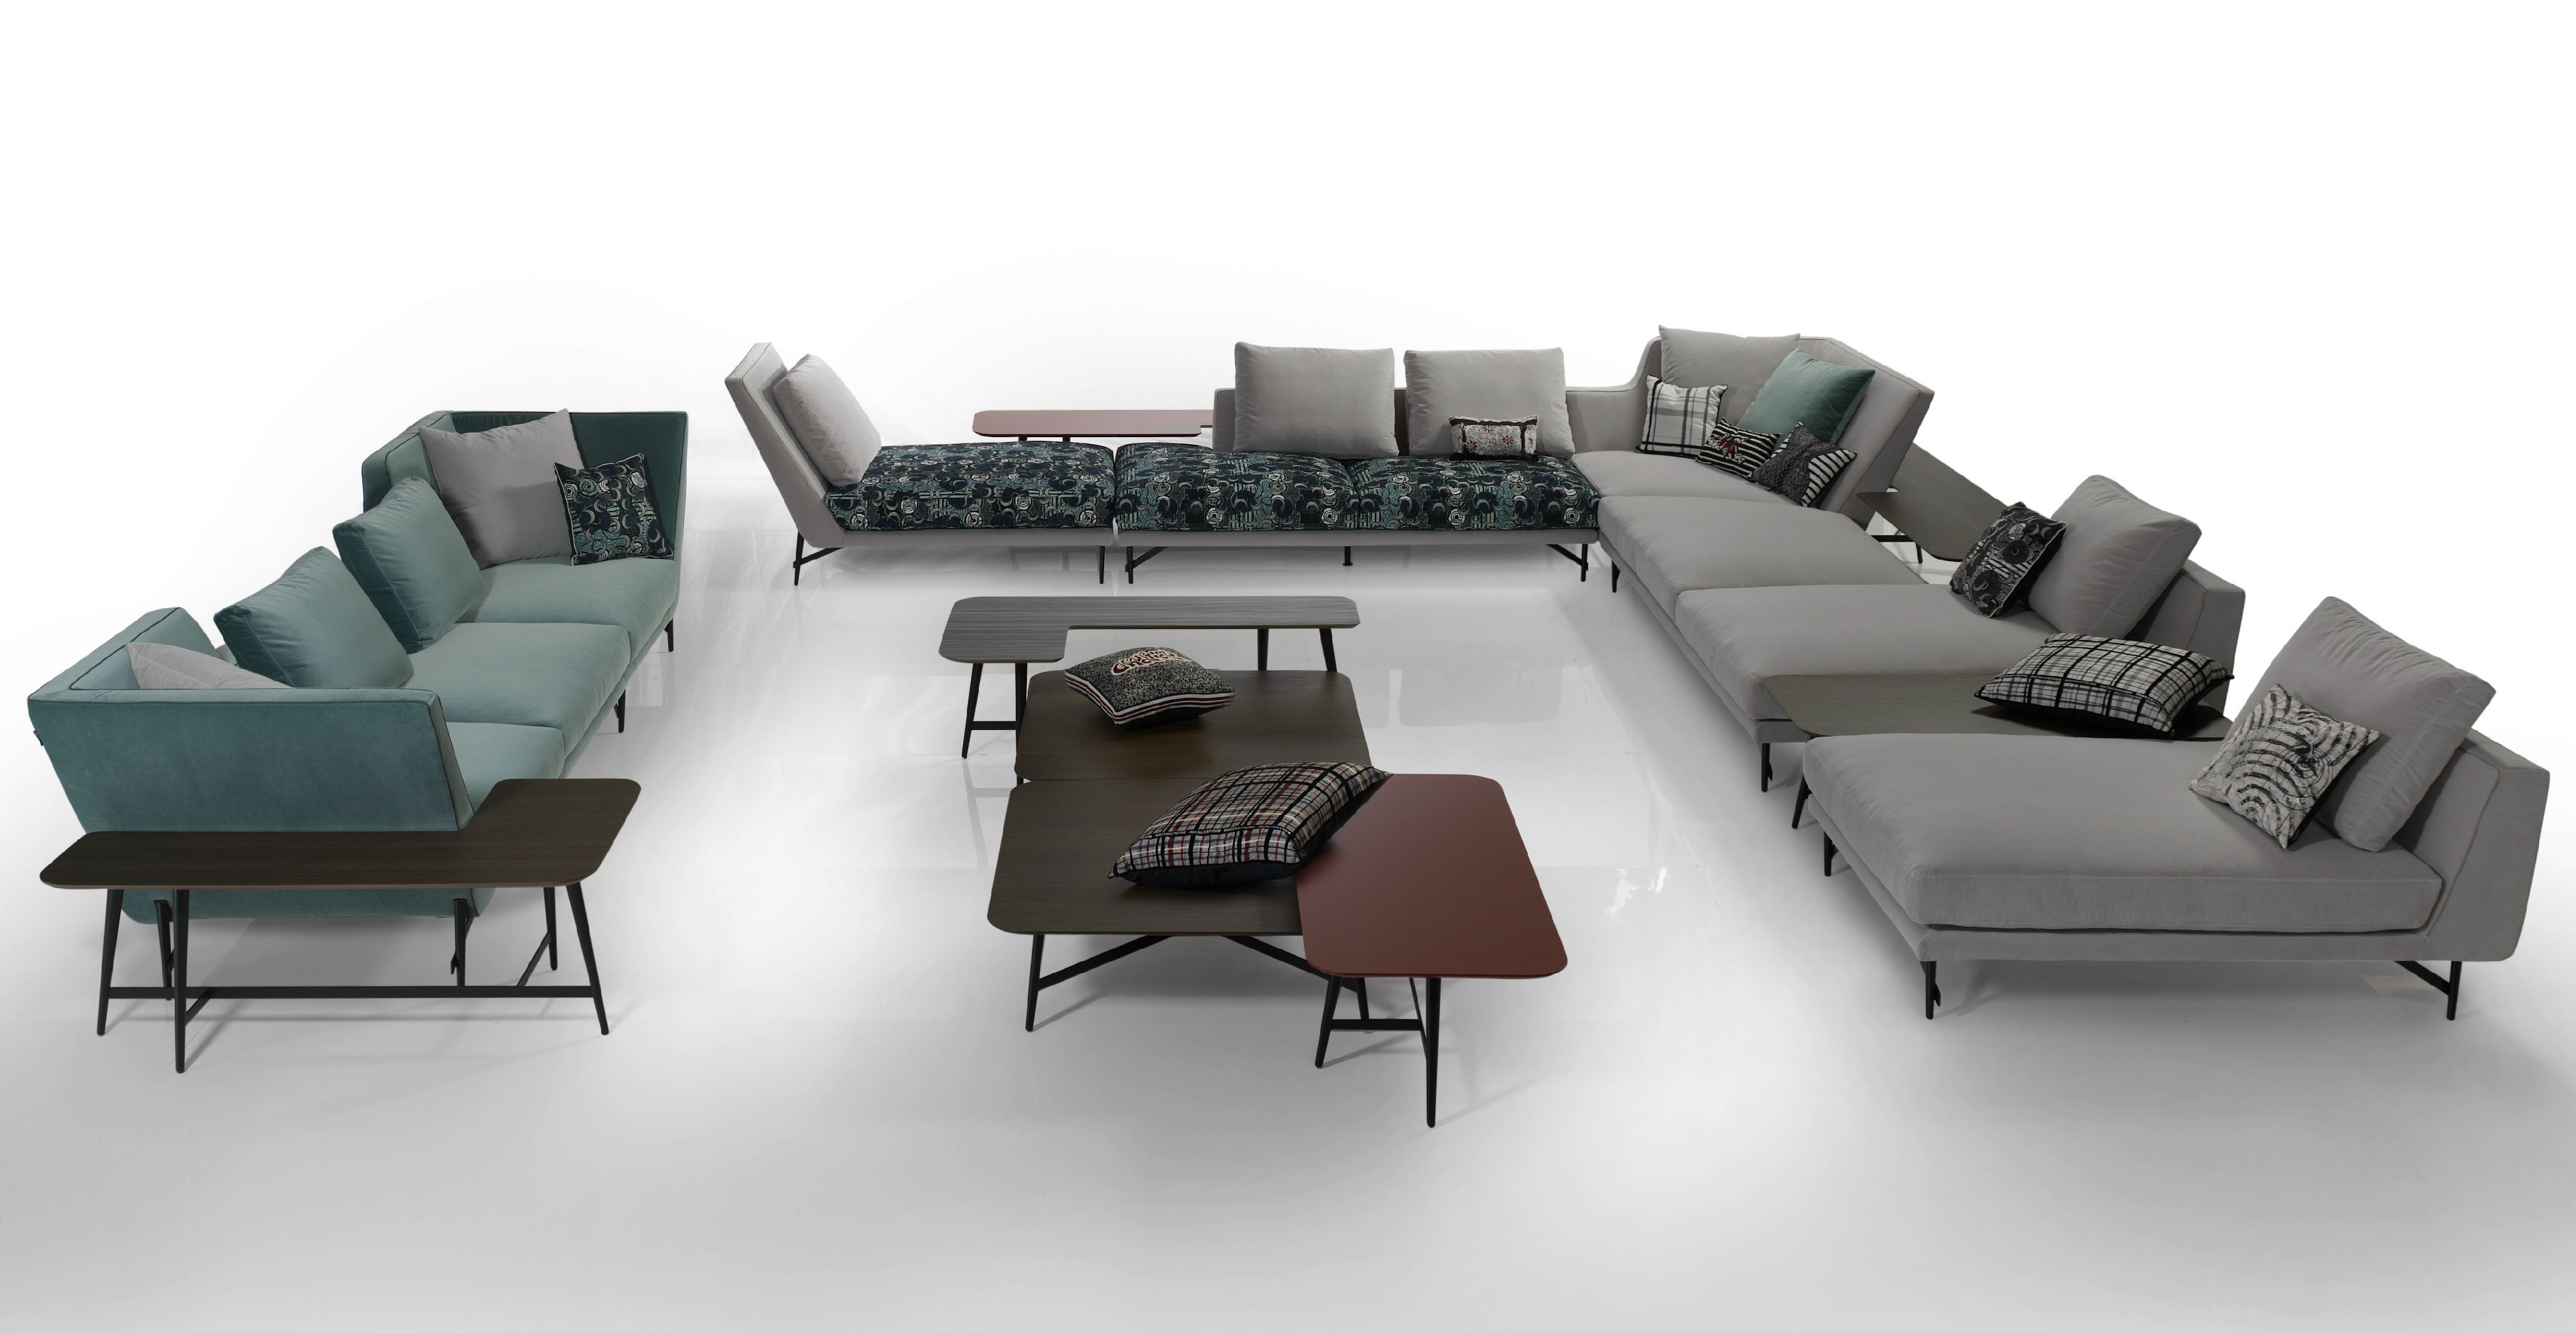 Seater fabric sofa with removable cover player by roche bobois